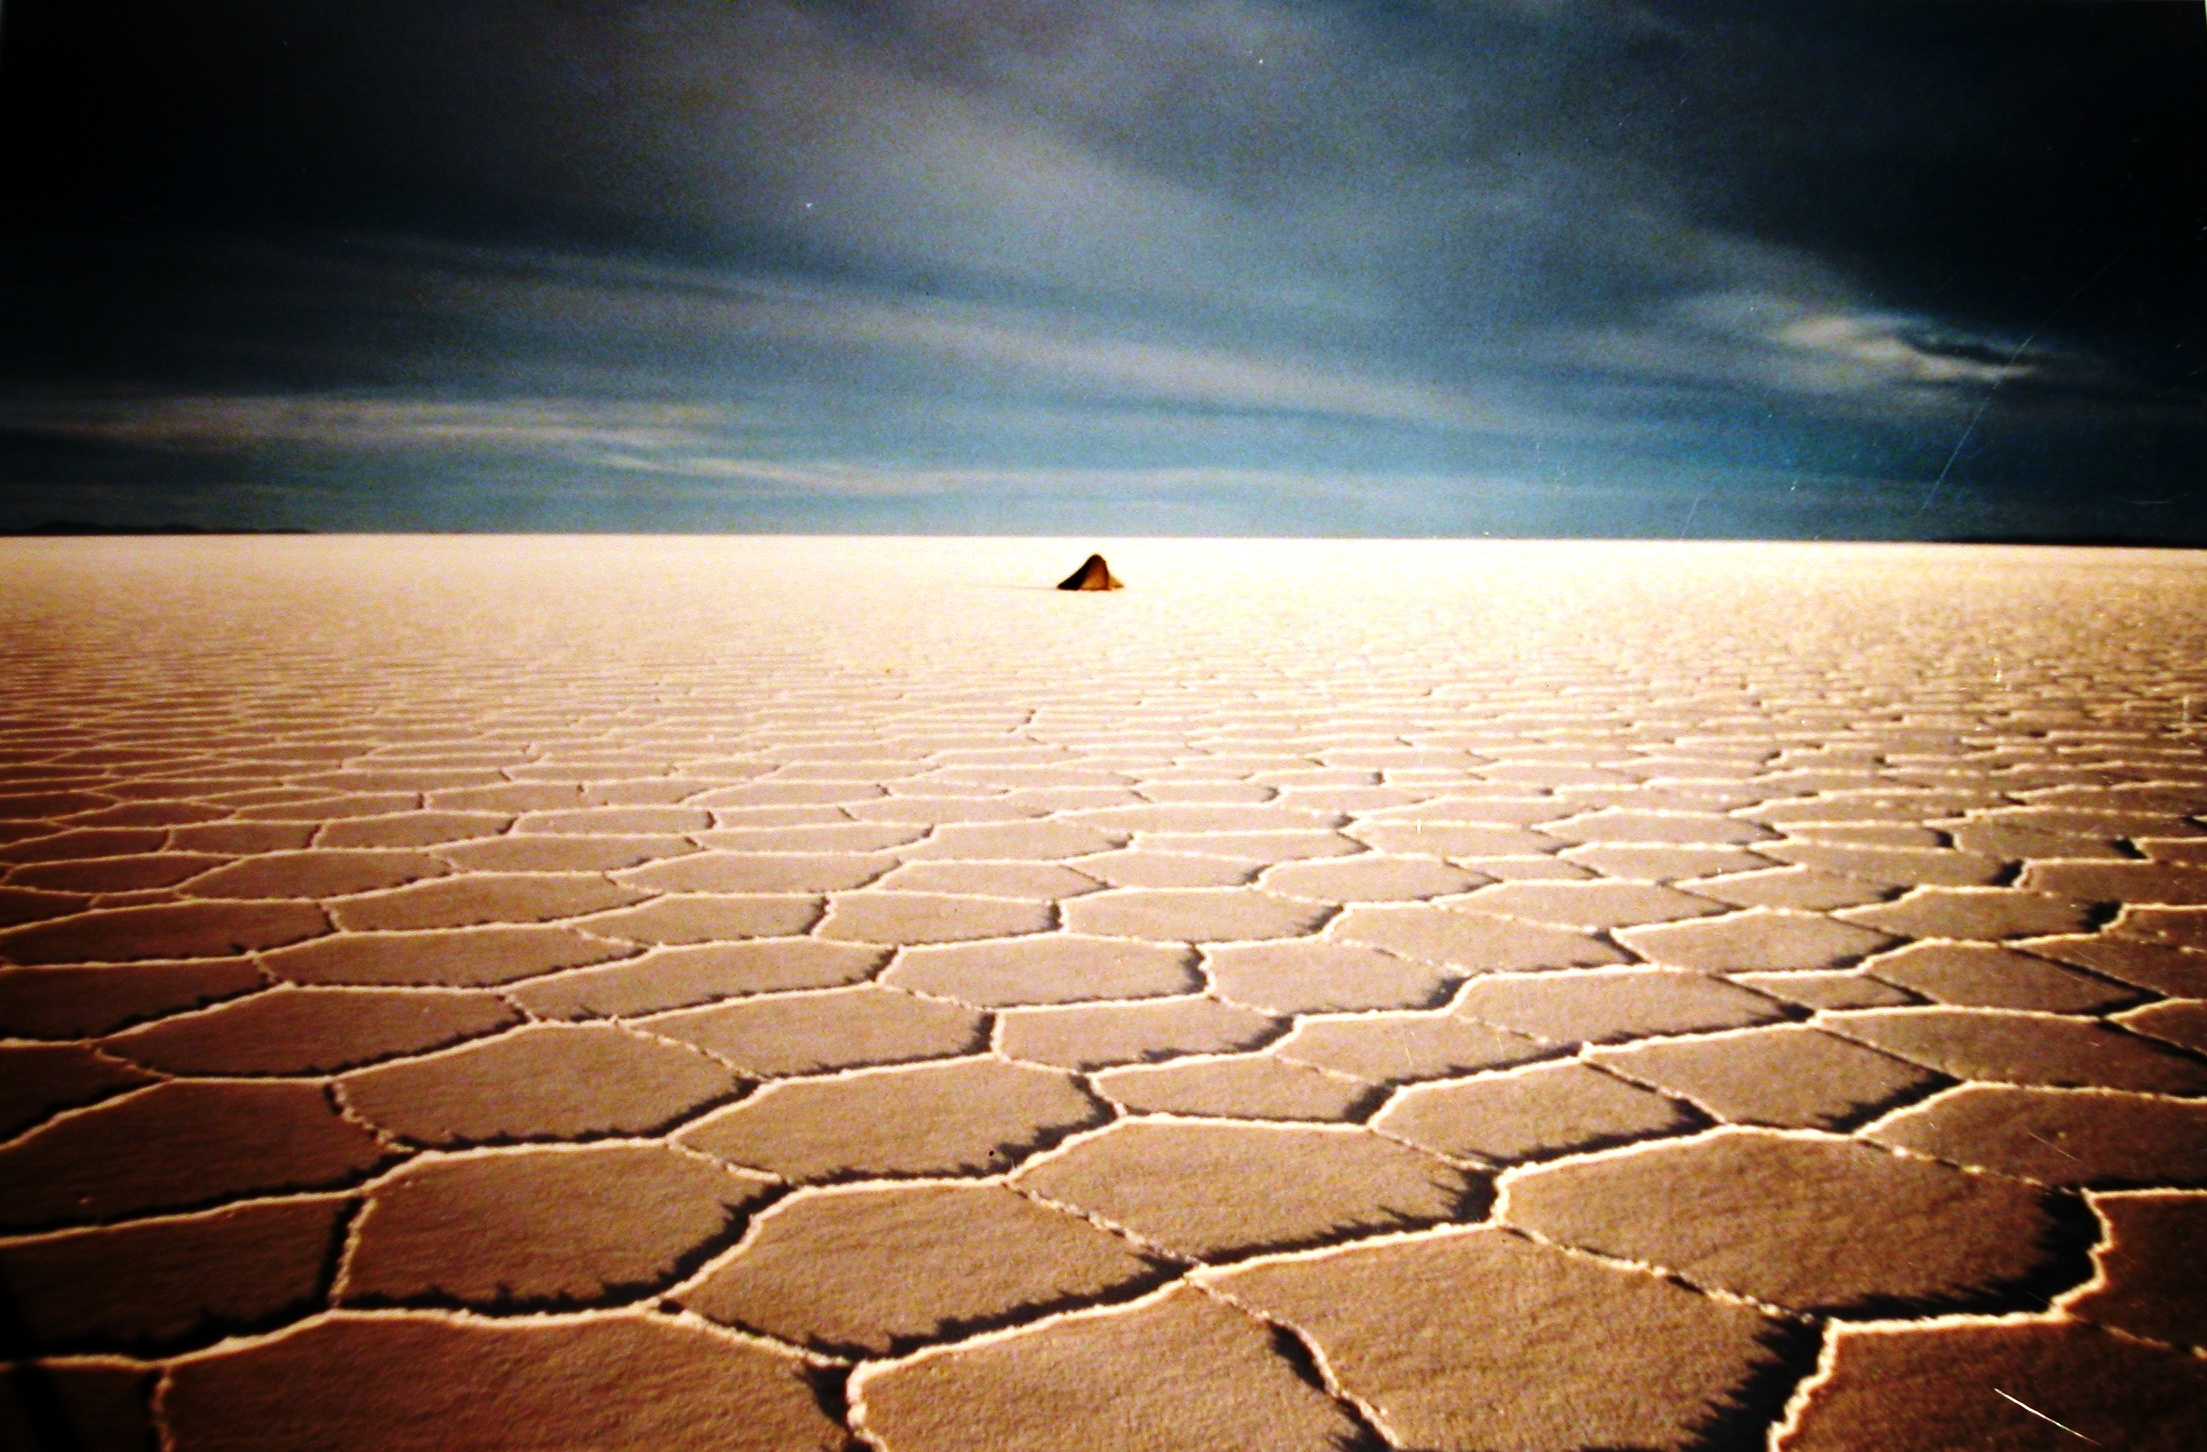 A minute tent in the distance on a barren, cracked desert floor in Bolivia